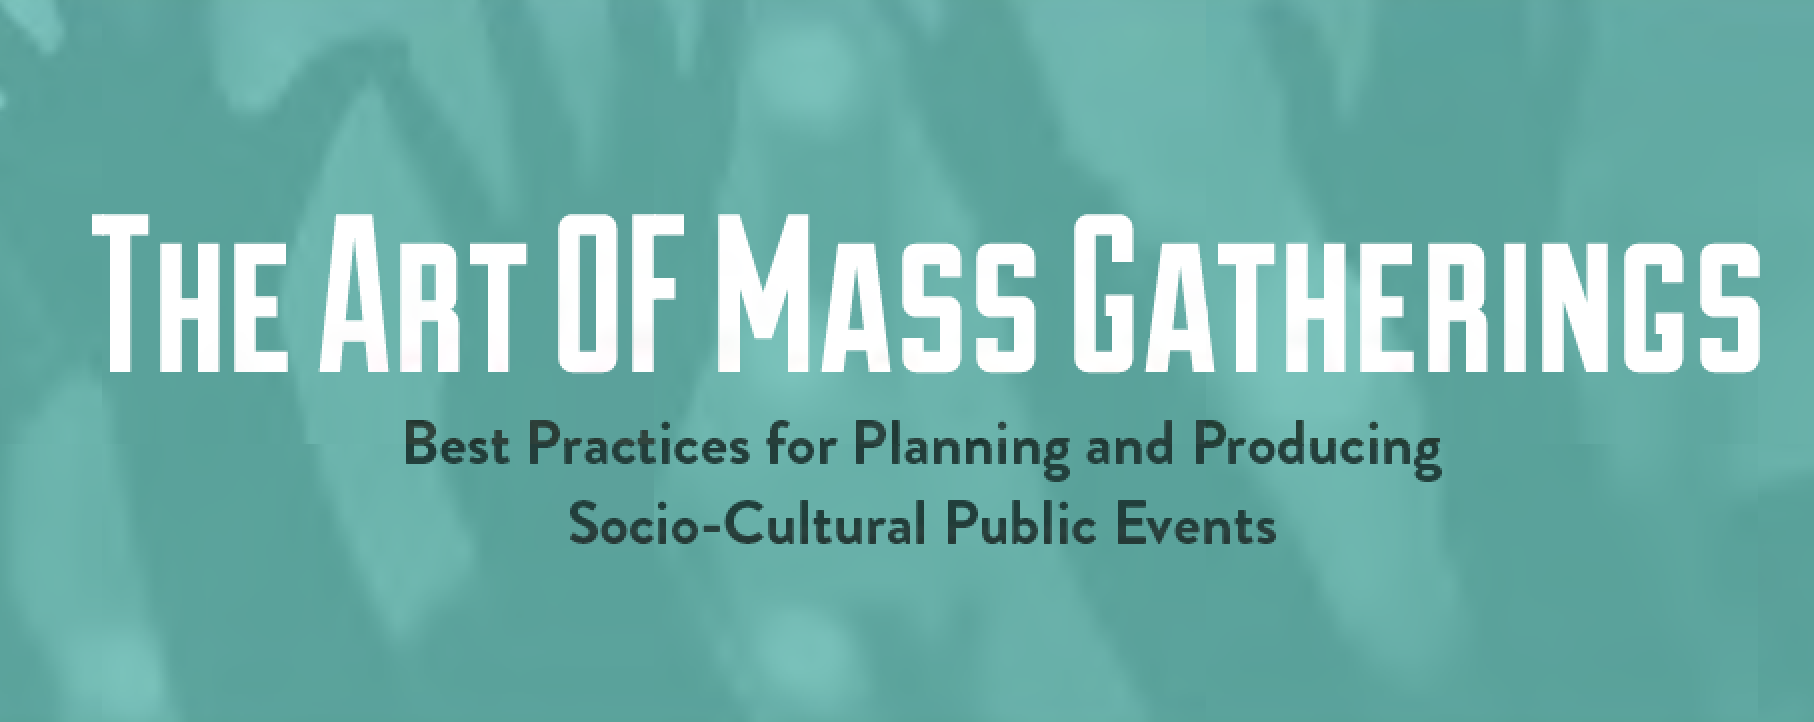 EVENTS: Art of Mass Gatherings Symposium by Performing Arts Readiness, in partnership with Denver Arts & Venues